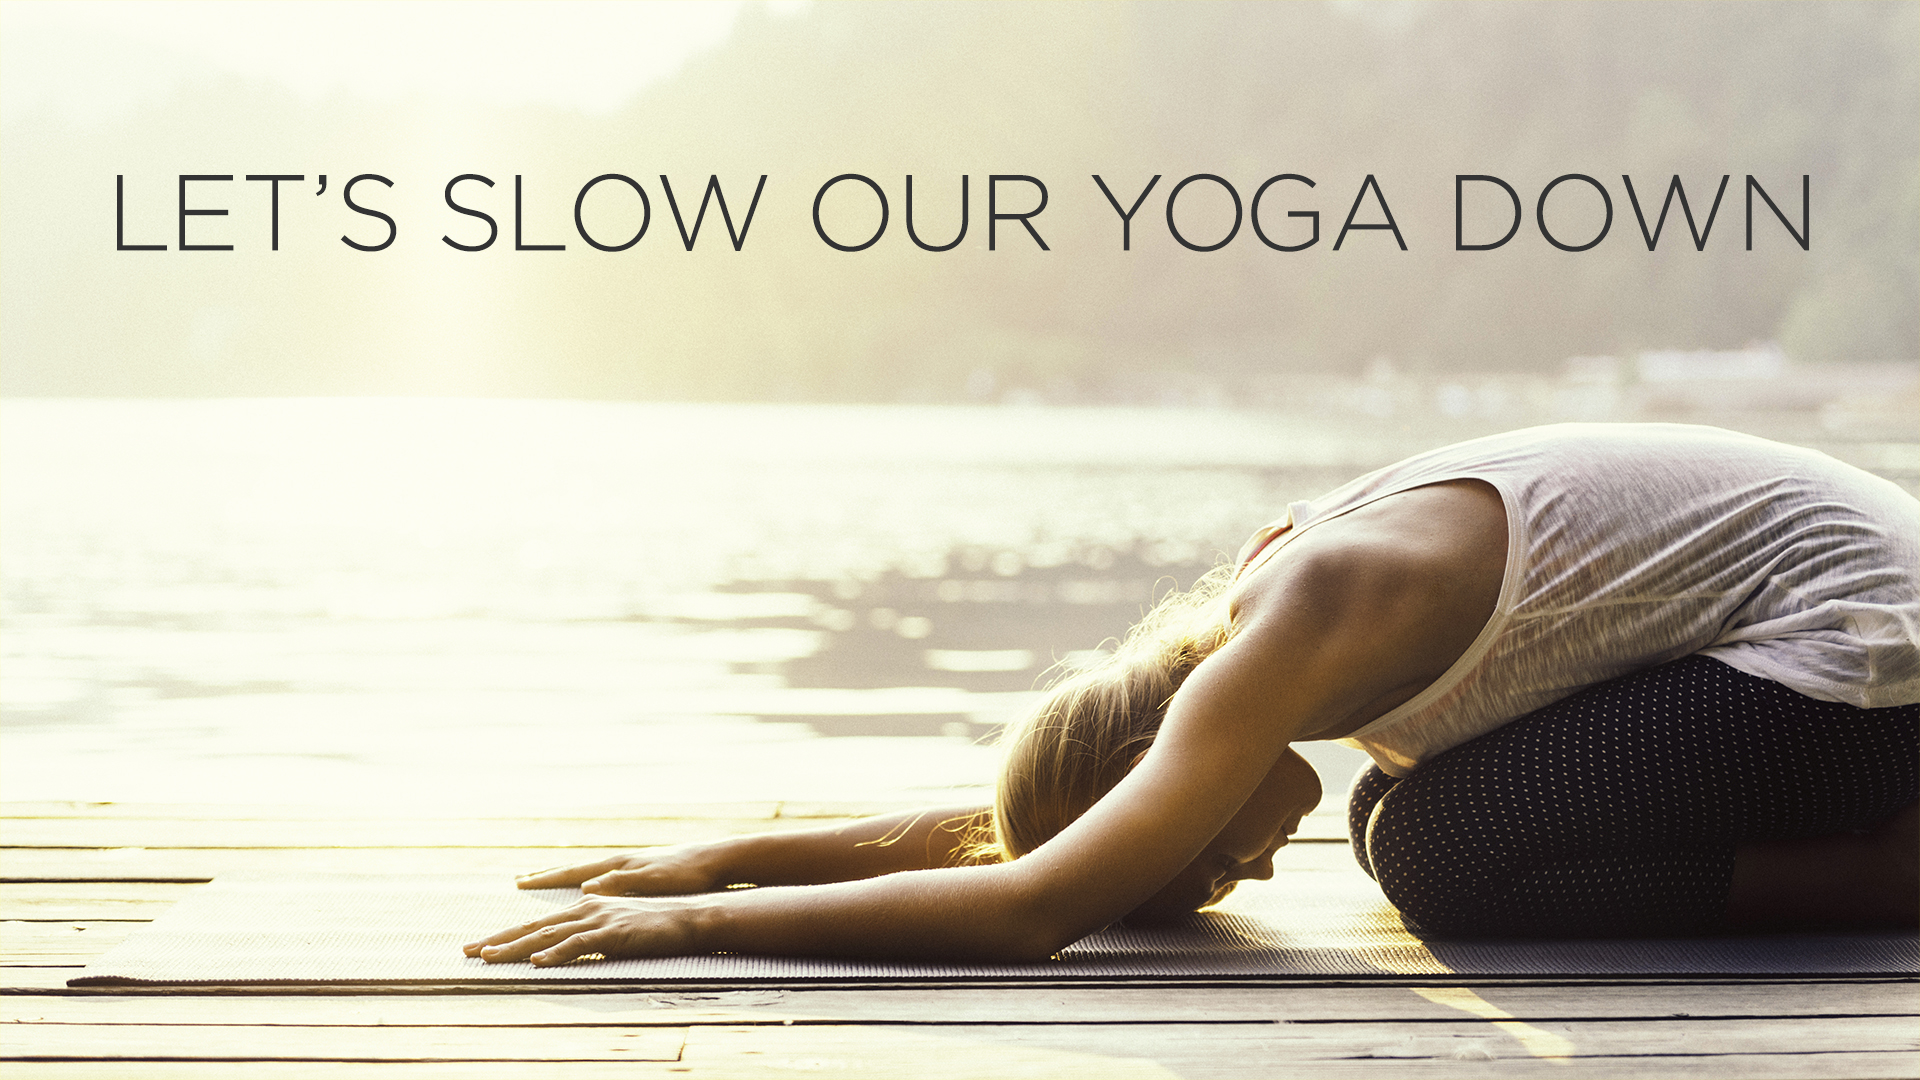 Let's Slow Our Yoga Down